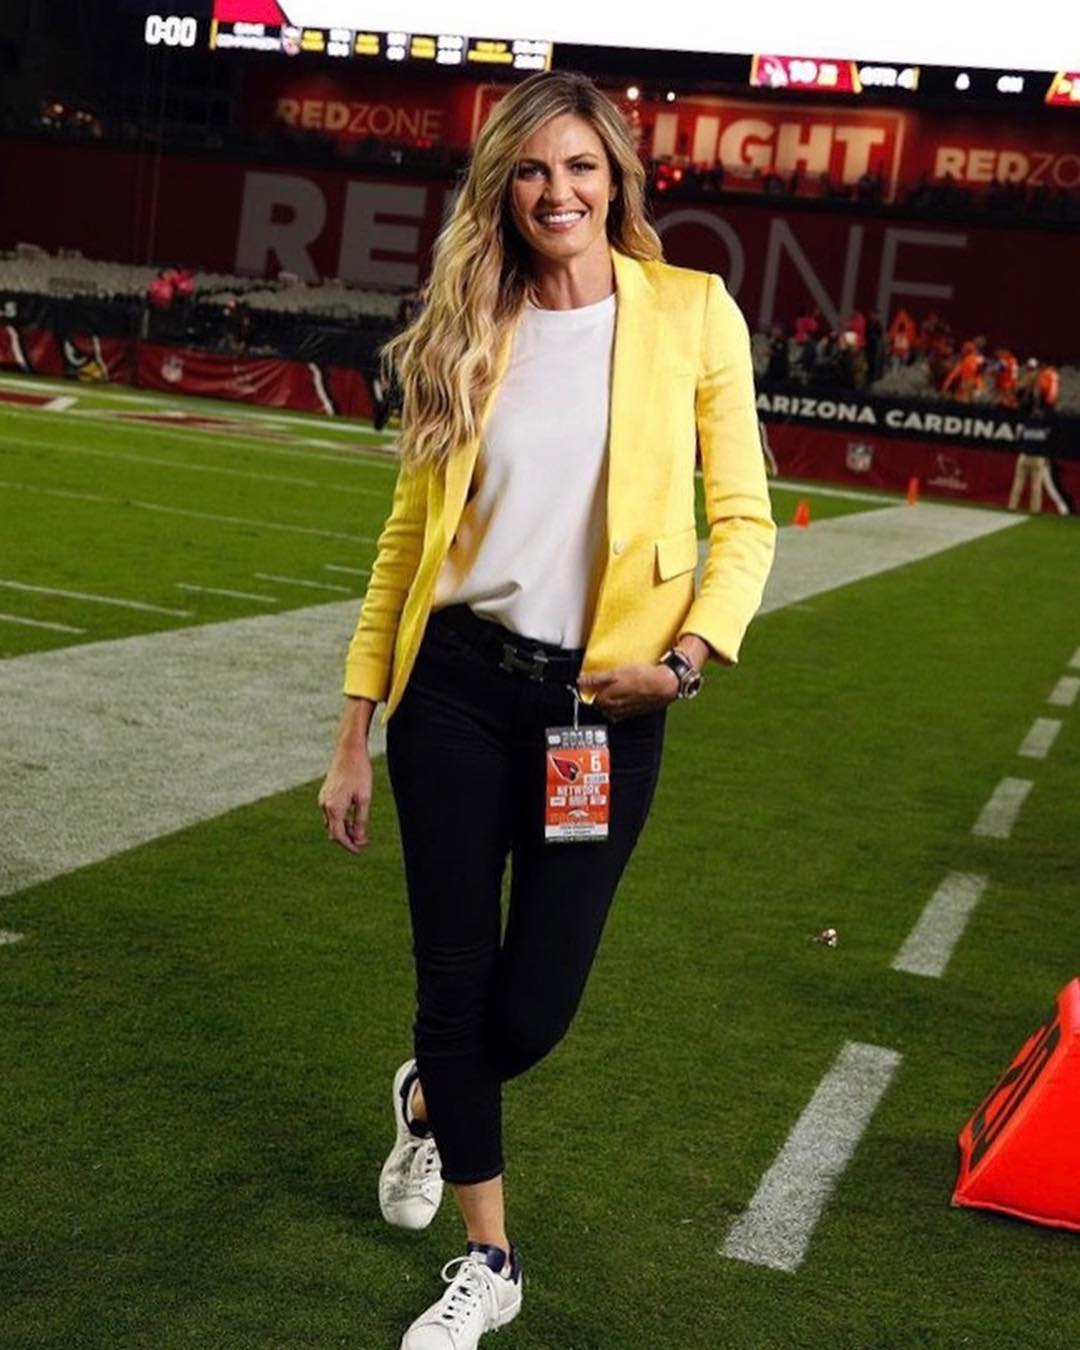 Erin Andrews has a slender long legs and has maintained a hot body measurements complimented by her height of 5 ft 10 inches and weight of 55 kg